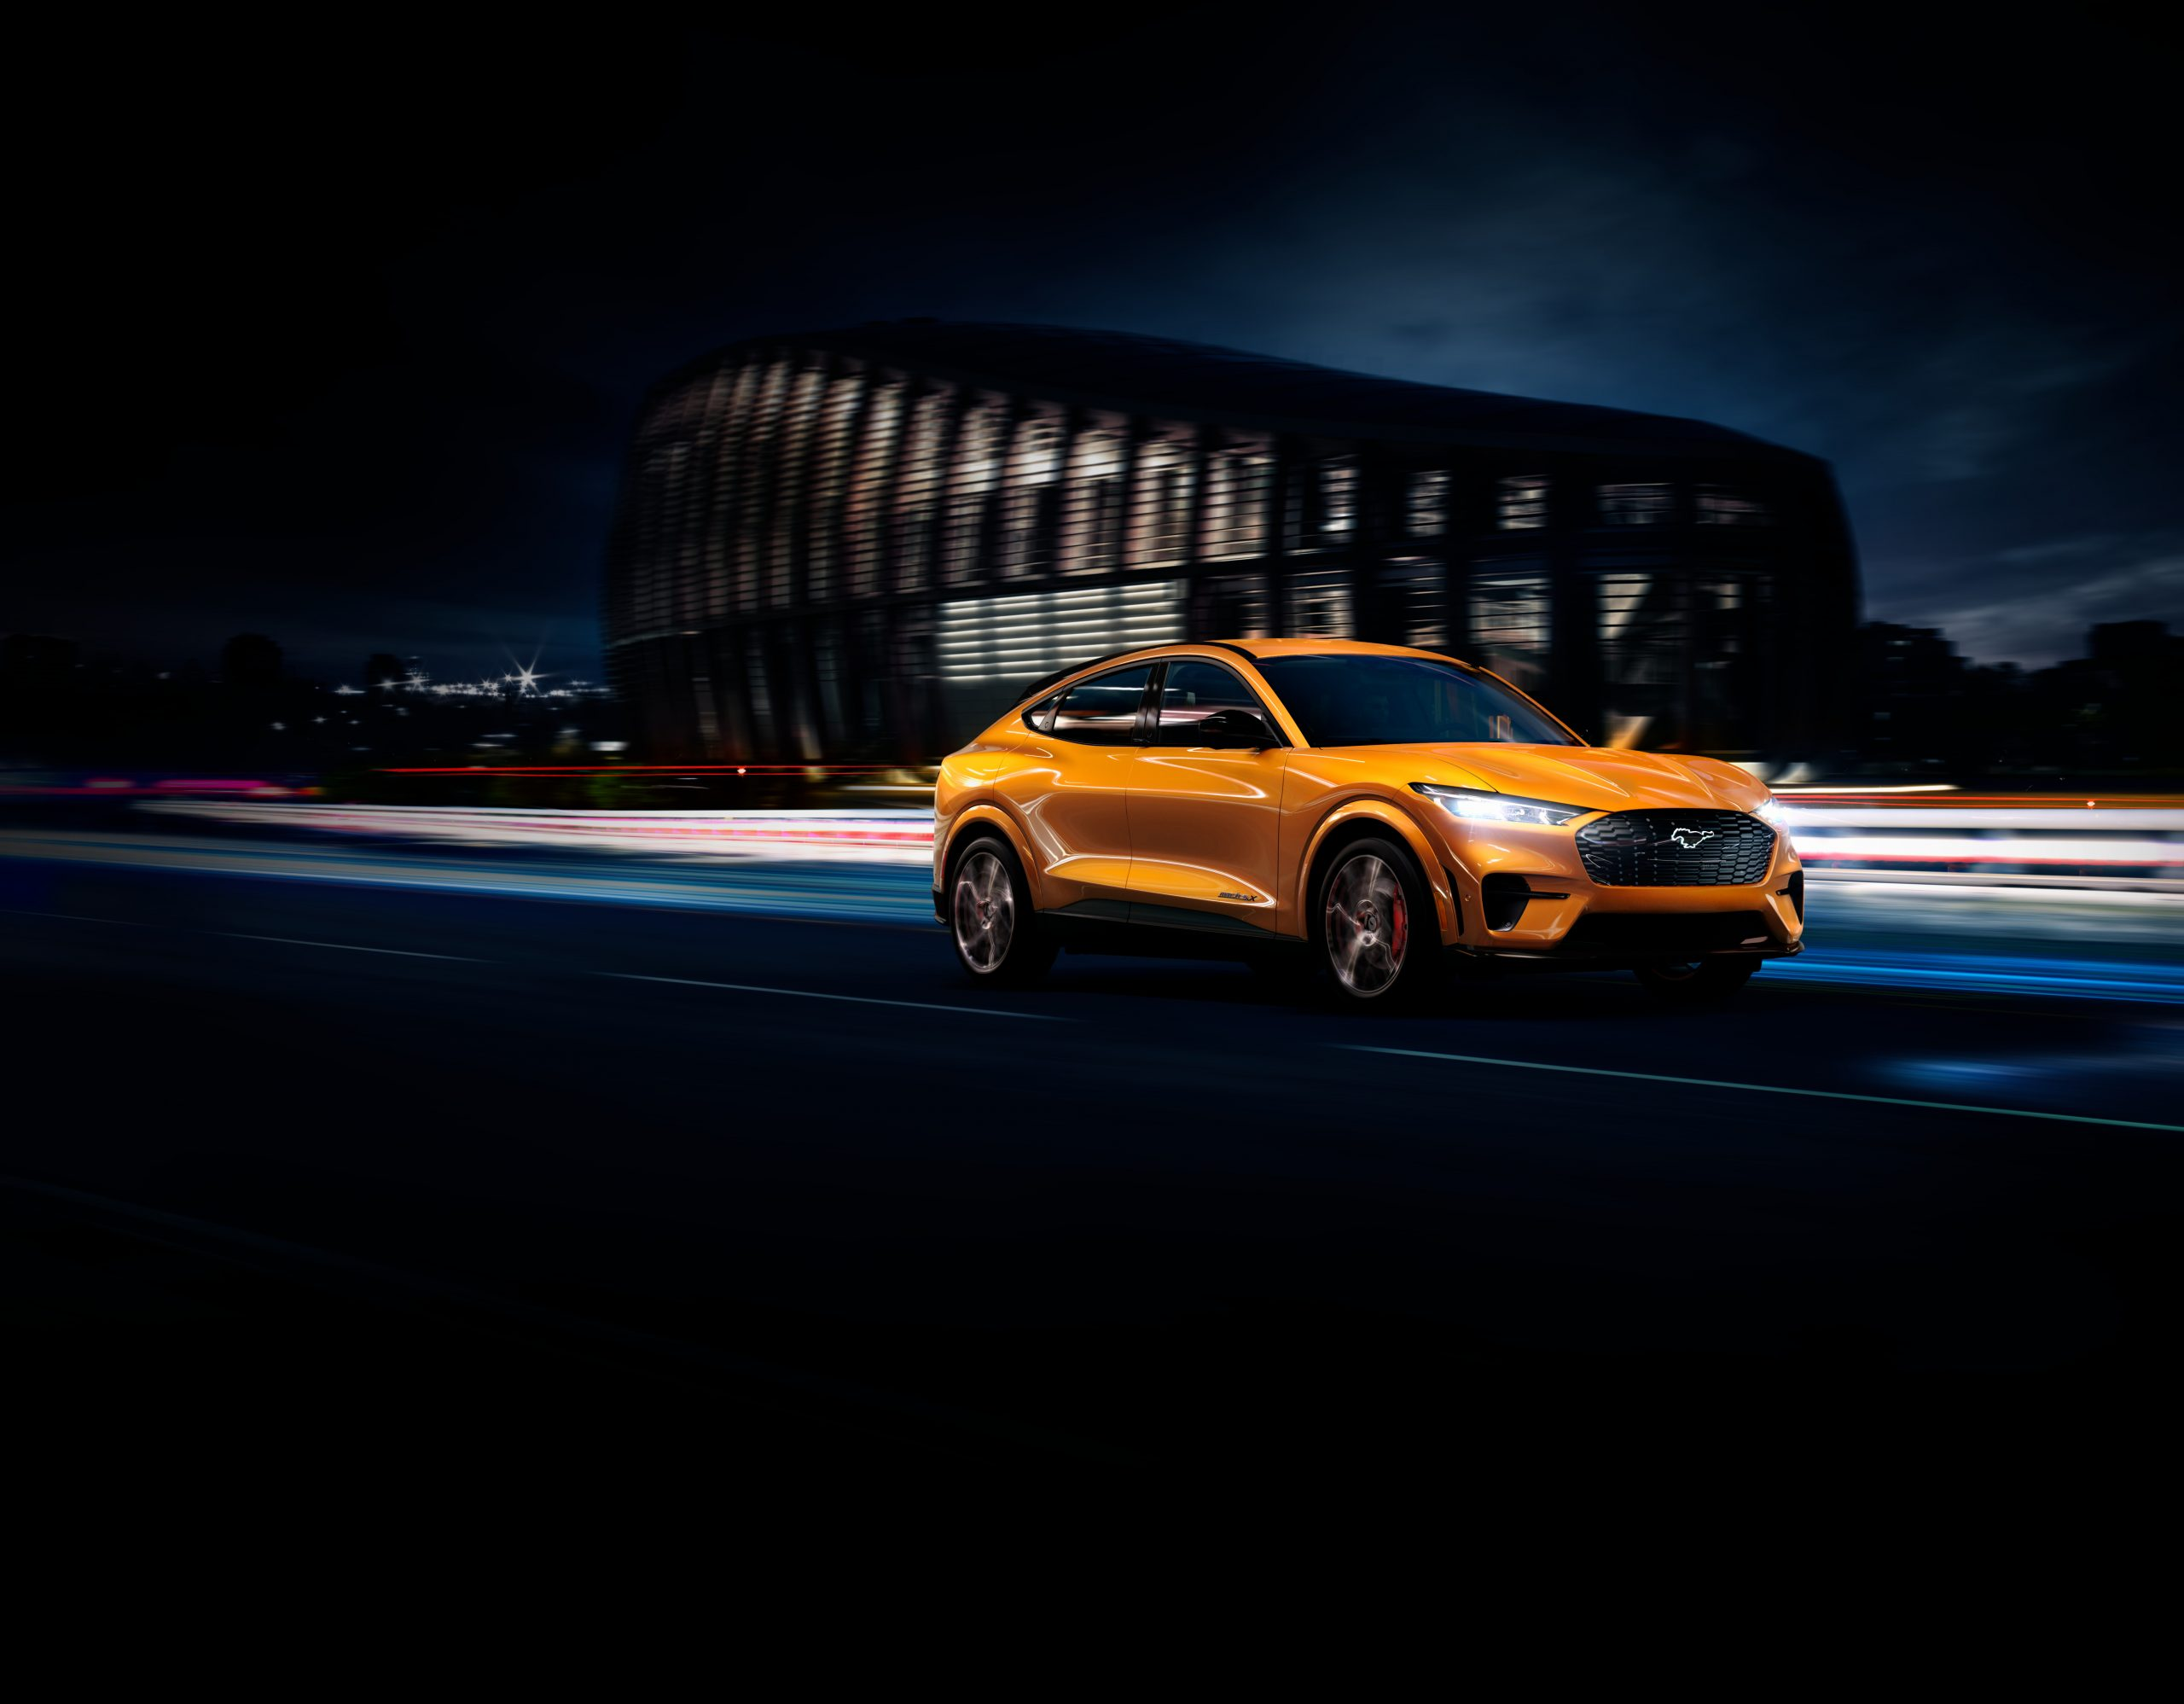 2020 FORD MACH E GT CYBER ORANGE 01 scaled Από 51.587 ευρώ η τιμή της Ford Mustang Mach-E στην Ελλάδα